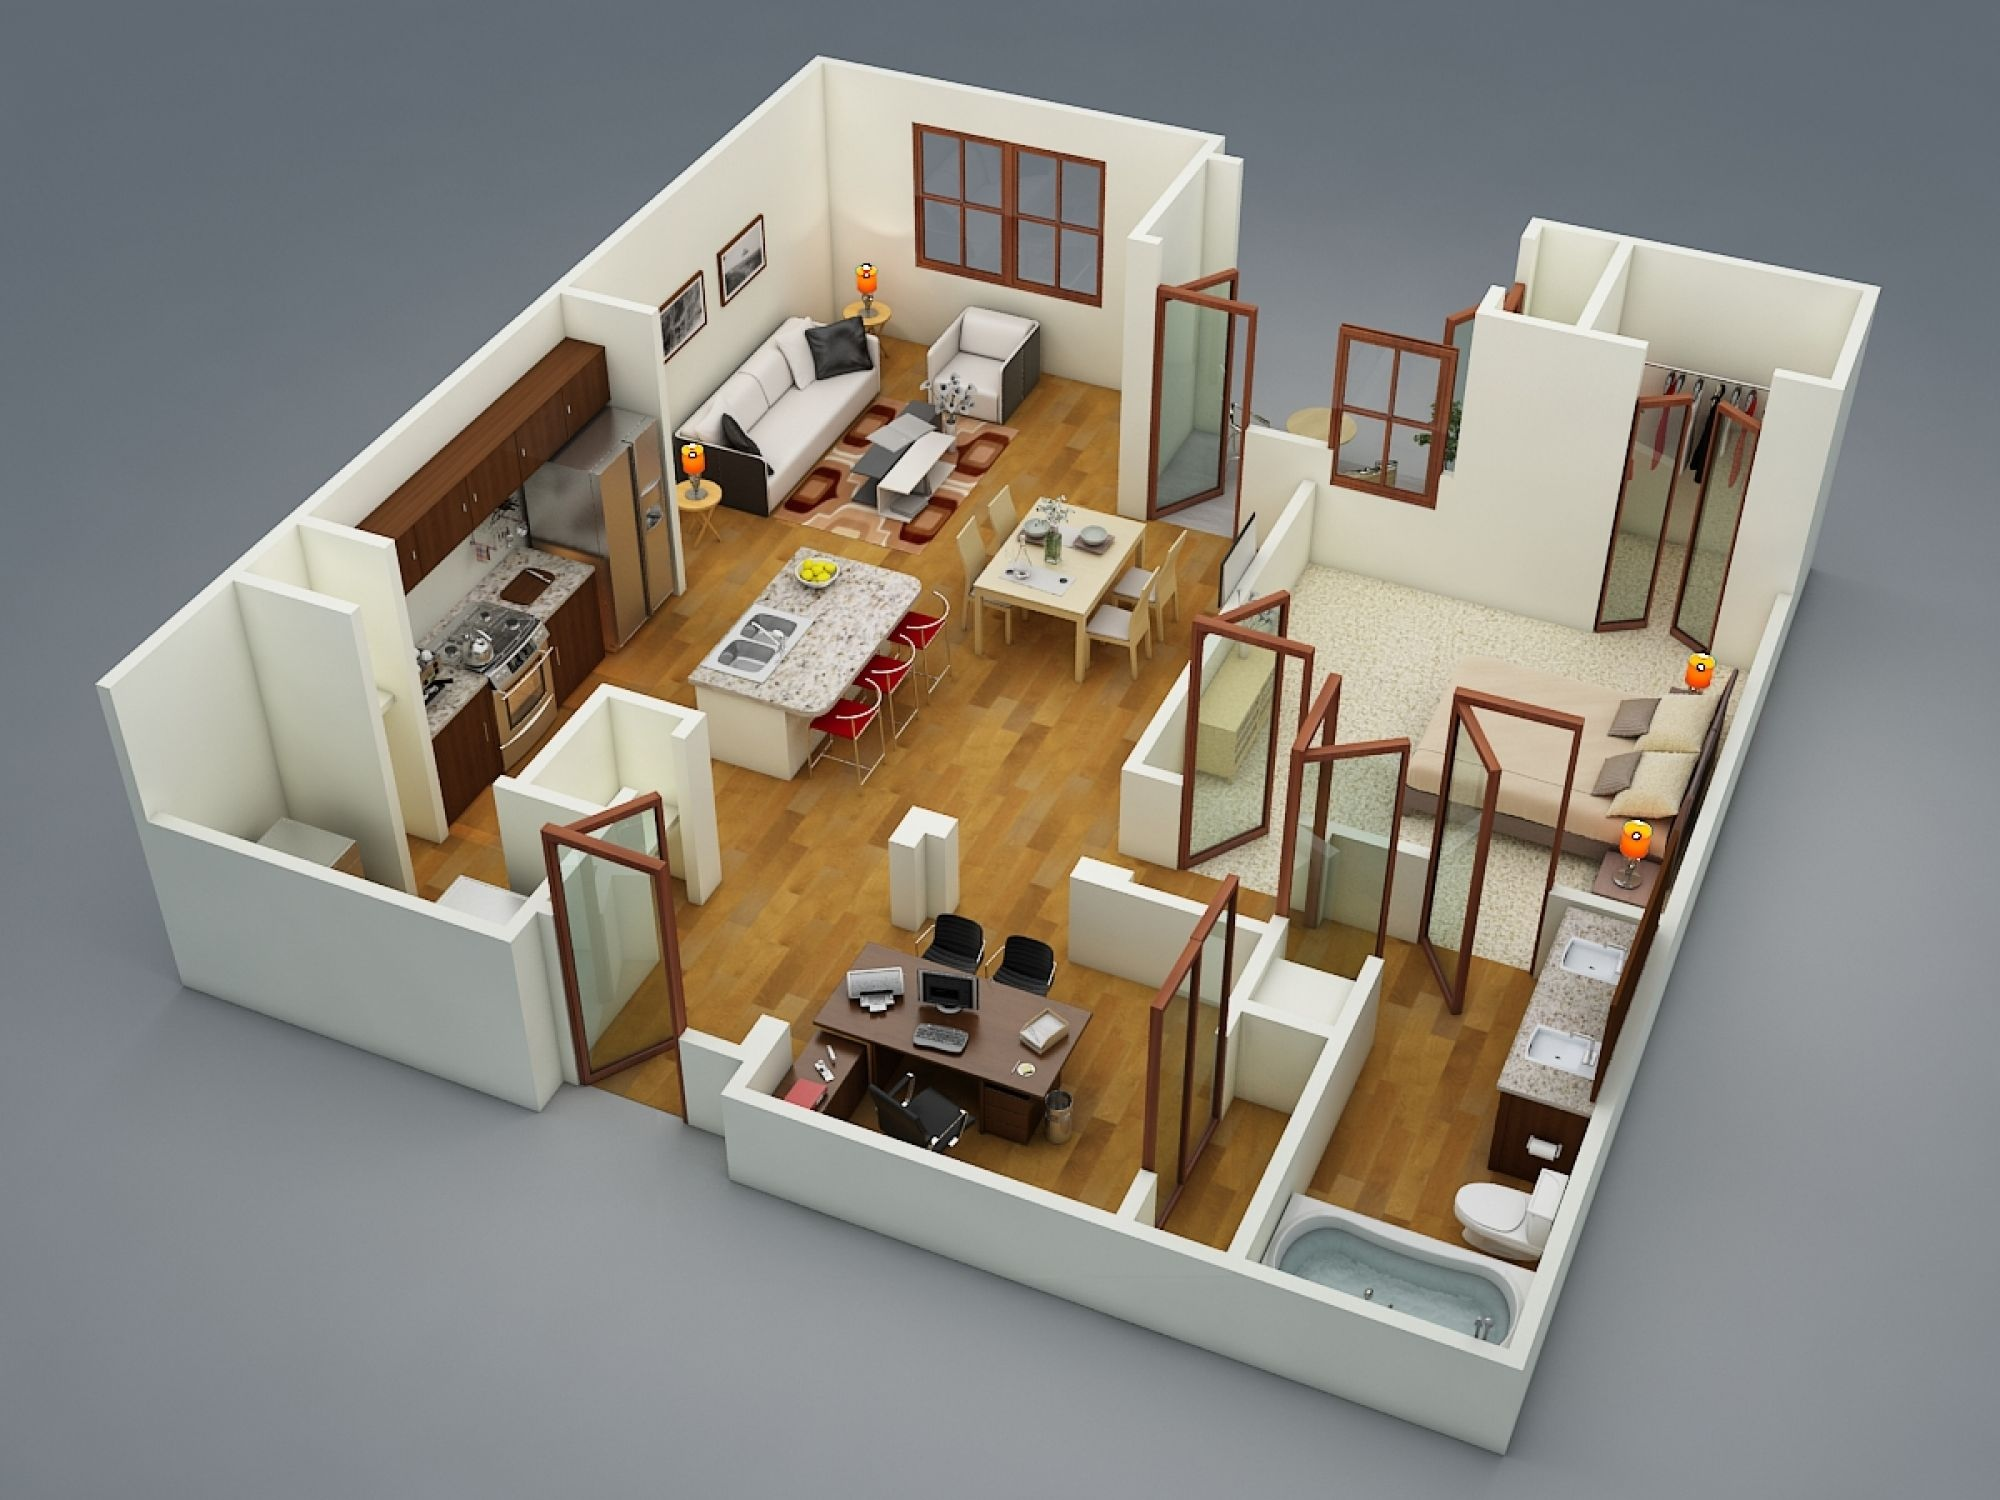 1 Bedroom Apartment/House Plans on house painting, house layout, house framing, house foundation, house building, house rendering, house types, house drawings, house styles, house structure, house models, house roof, house clip art, house design, house plants, house elevations, house blueprints, house exterior, house maps, house construction,